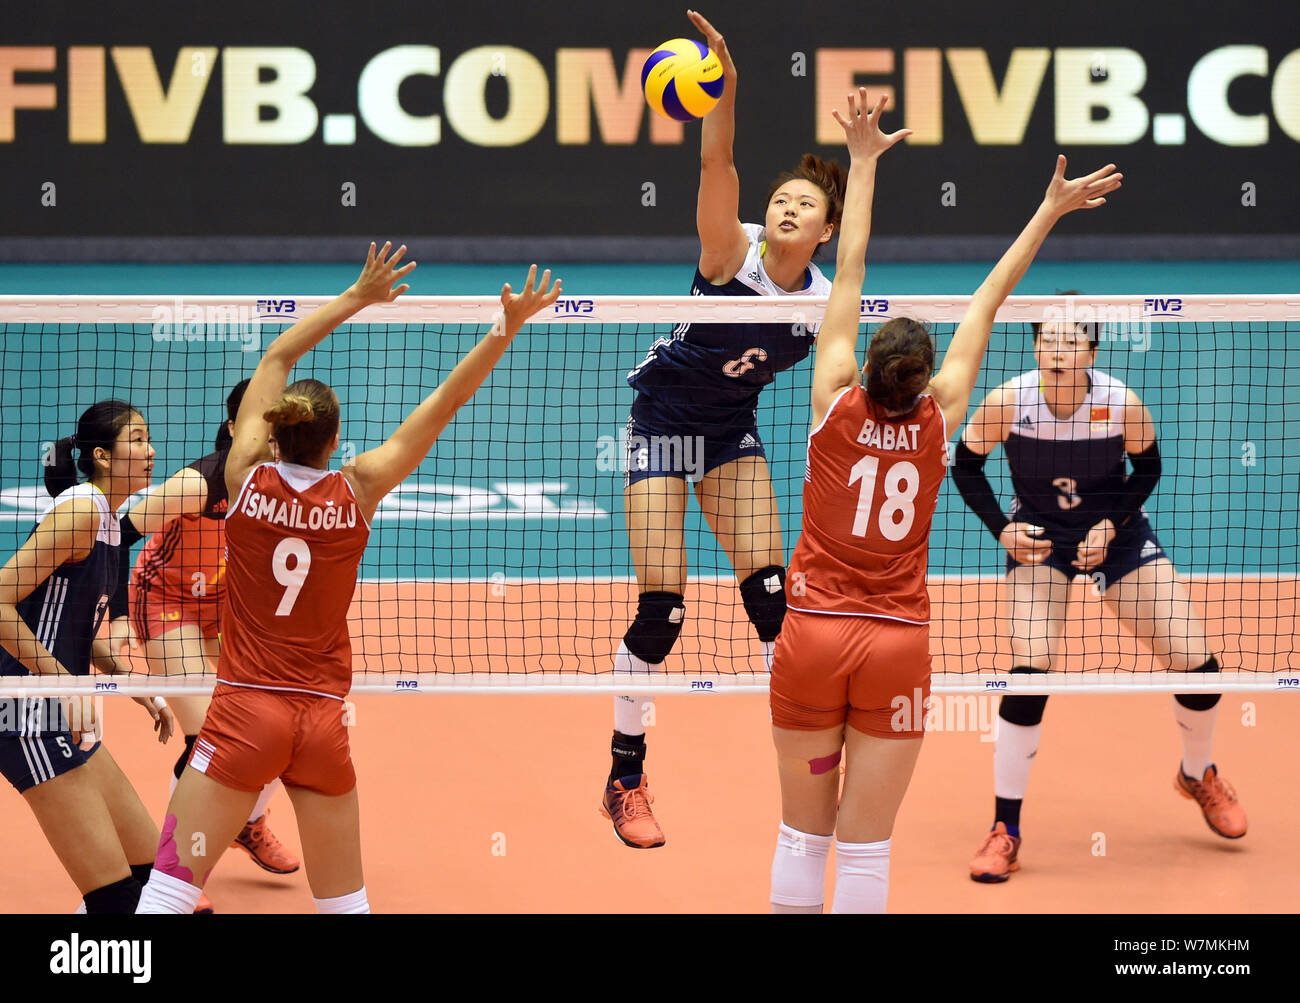 Gong Xiangyu Left Of China Spikes Against Meliha Ismailoglu And Dicle Nur Babat Of Turkey During The Pool E1 Group 1 Match Of The Fivb World Grand P Stock Photo Alamy